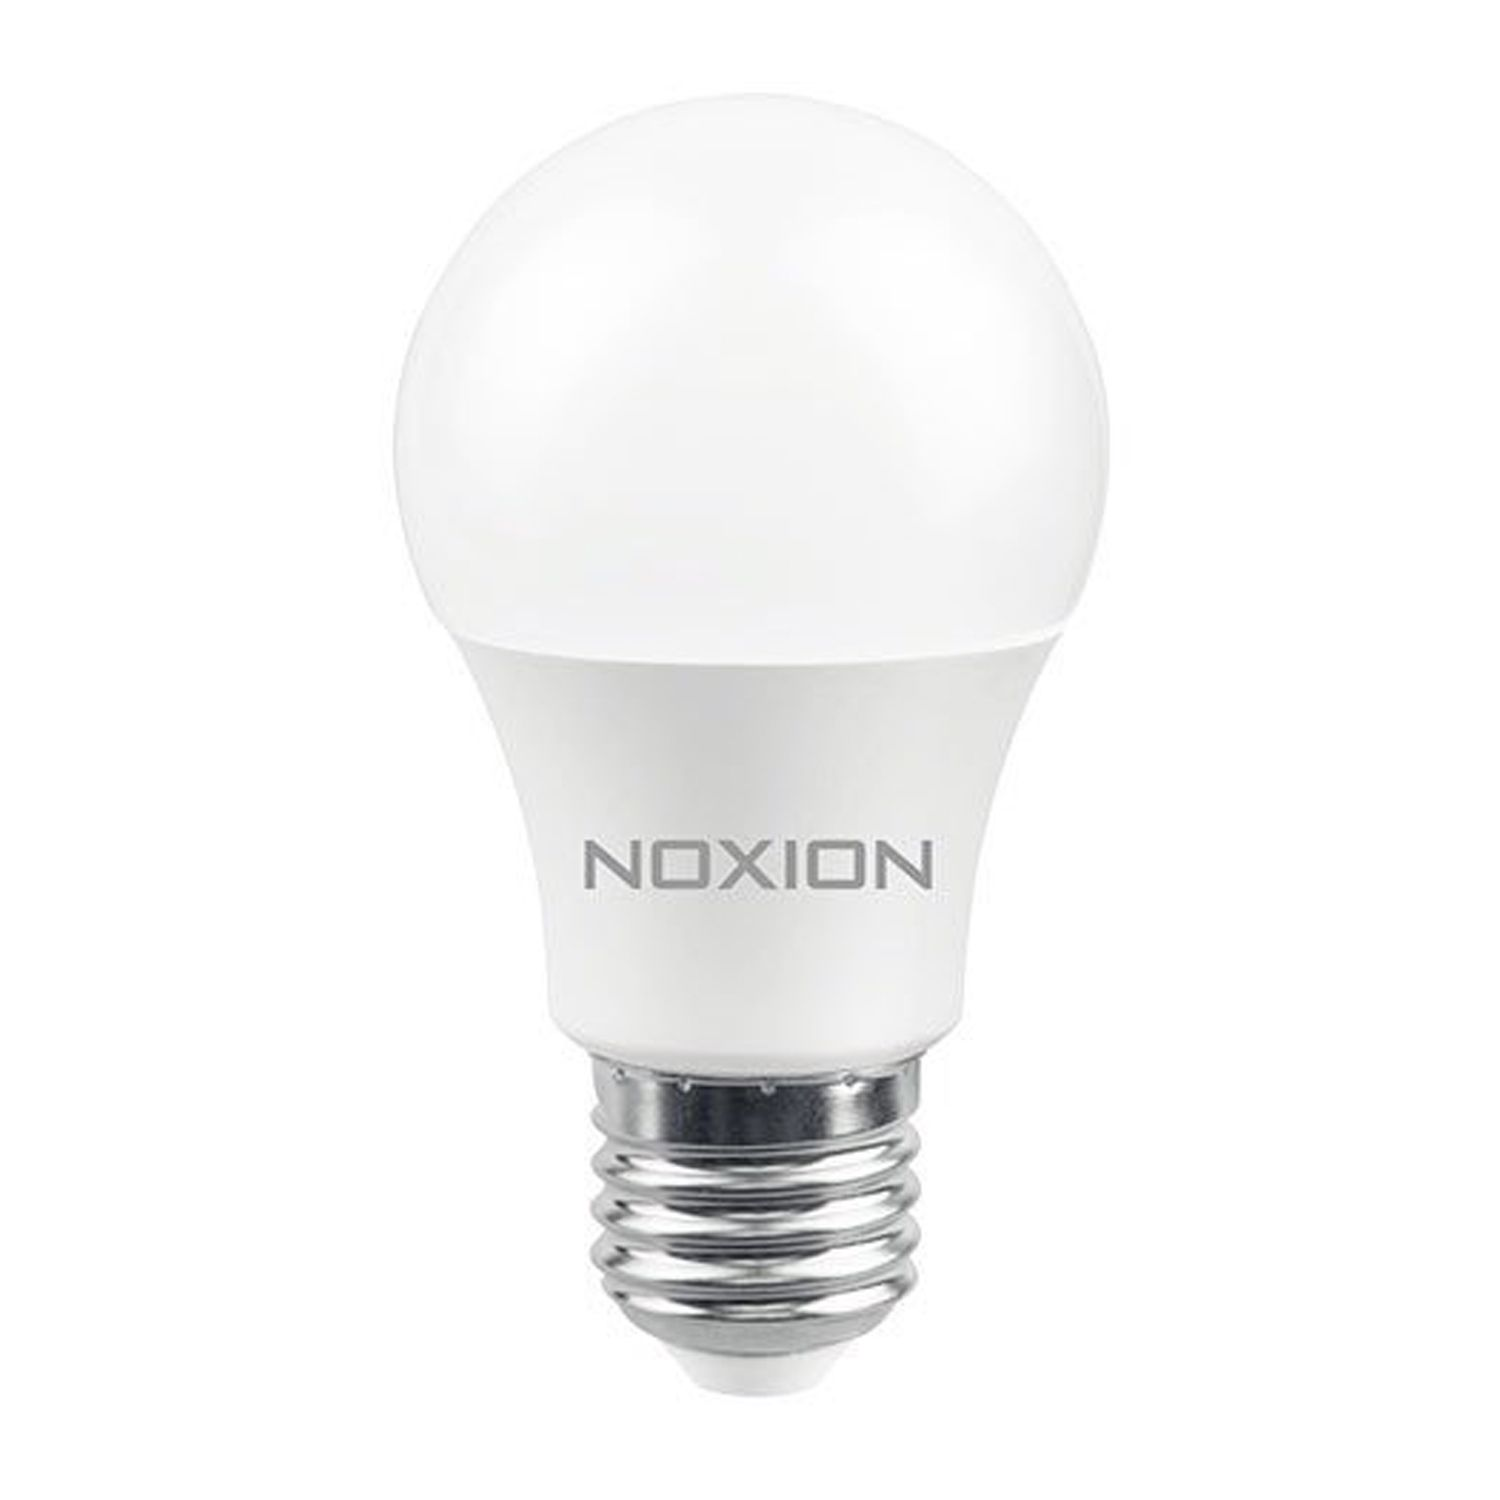 Noxion Lucent LED Classic 5.5W 827 A60 E27 | Replacer for 40W